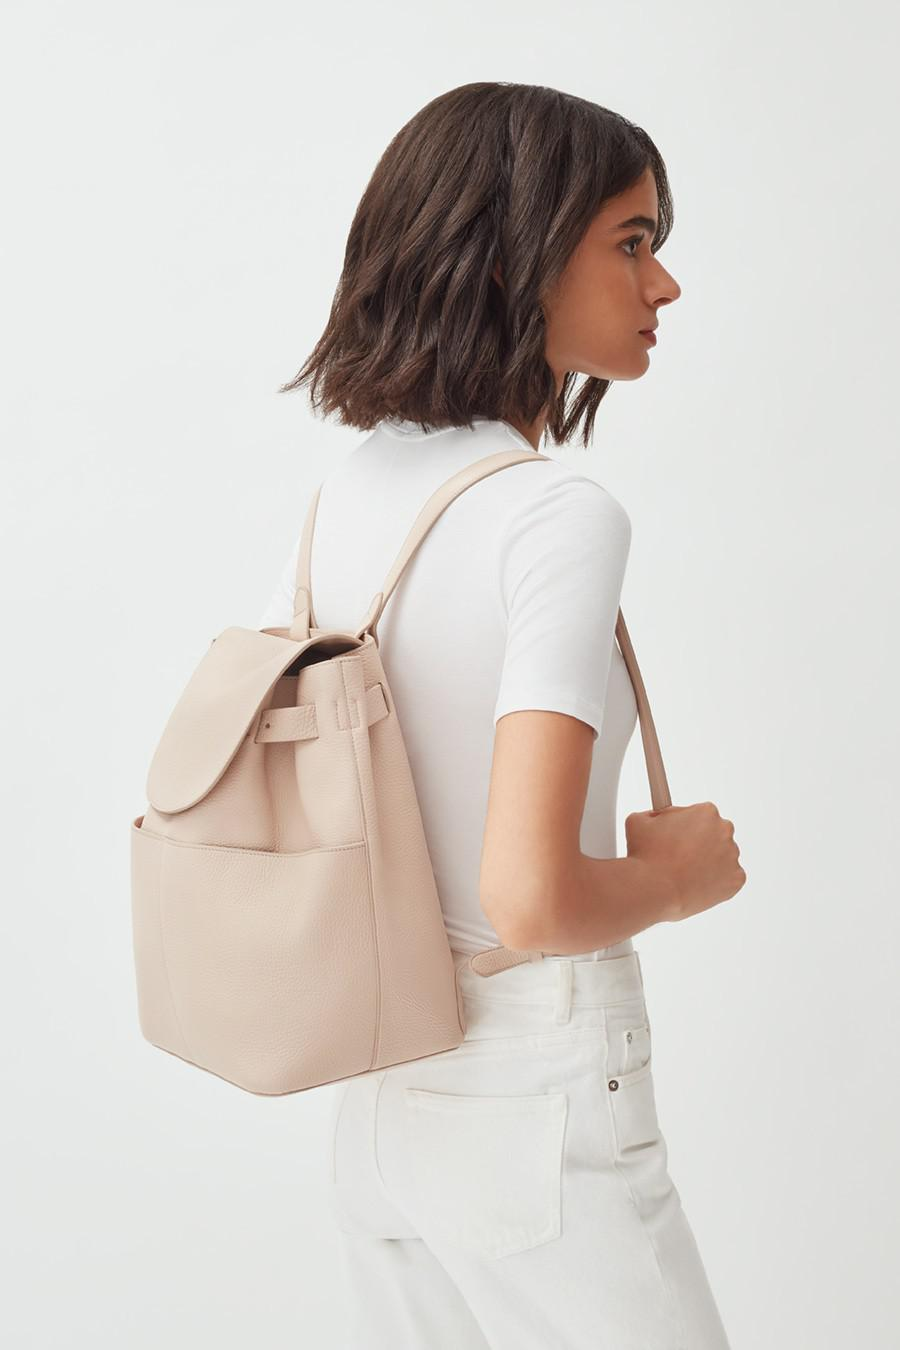 Women's Leather Backpack in Blush Pink | Pebbled Leather by Cuyana 6